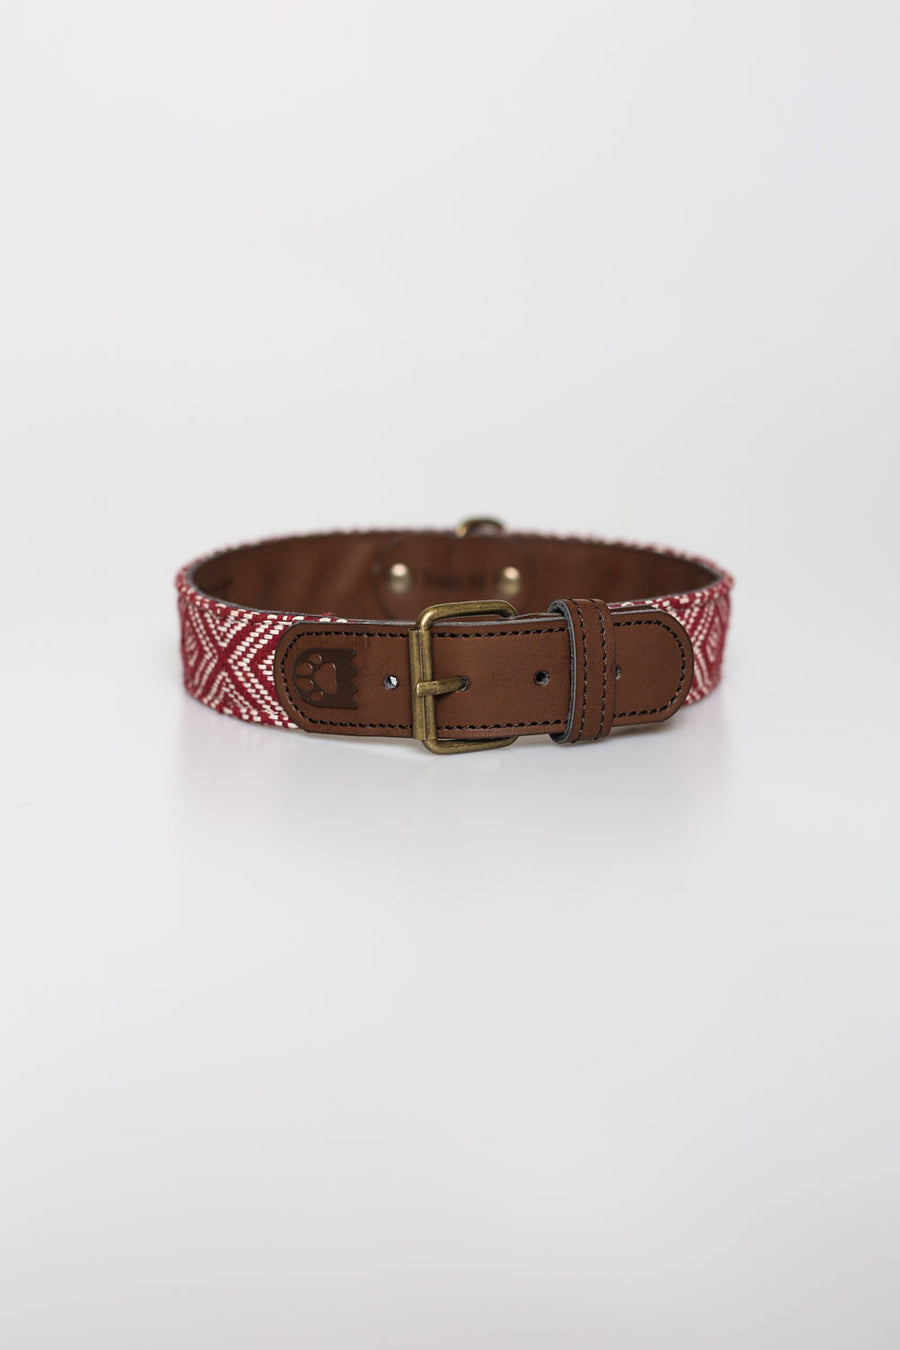 Collar Rustic Burdeos